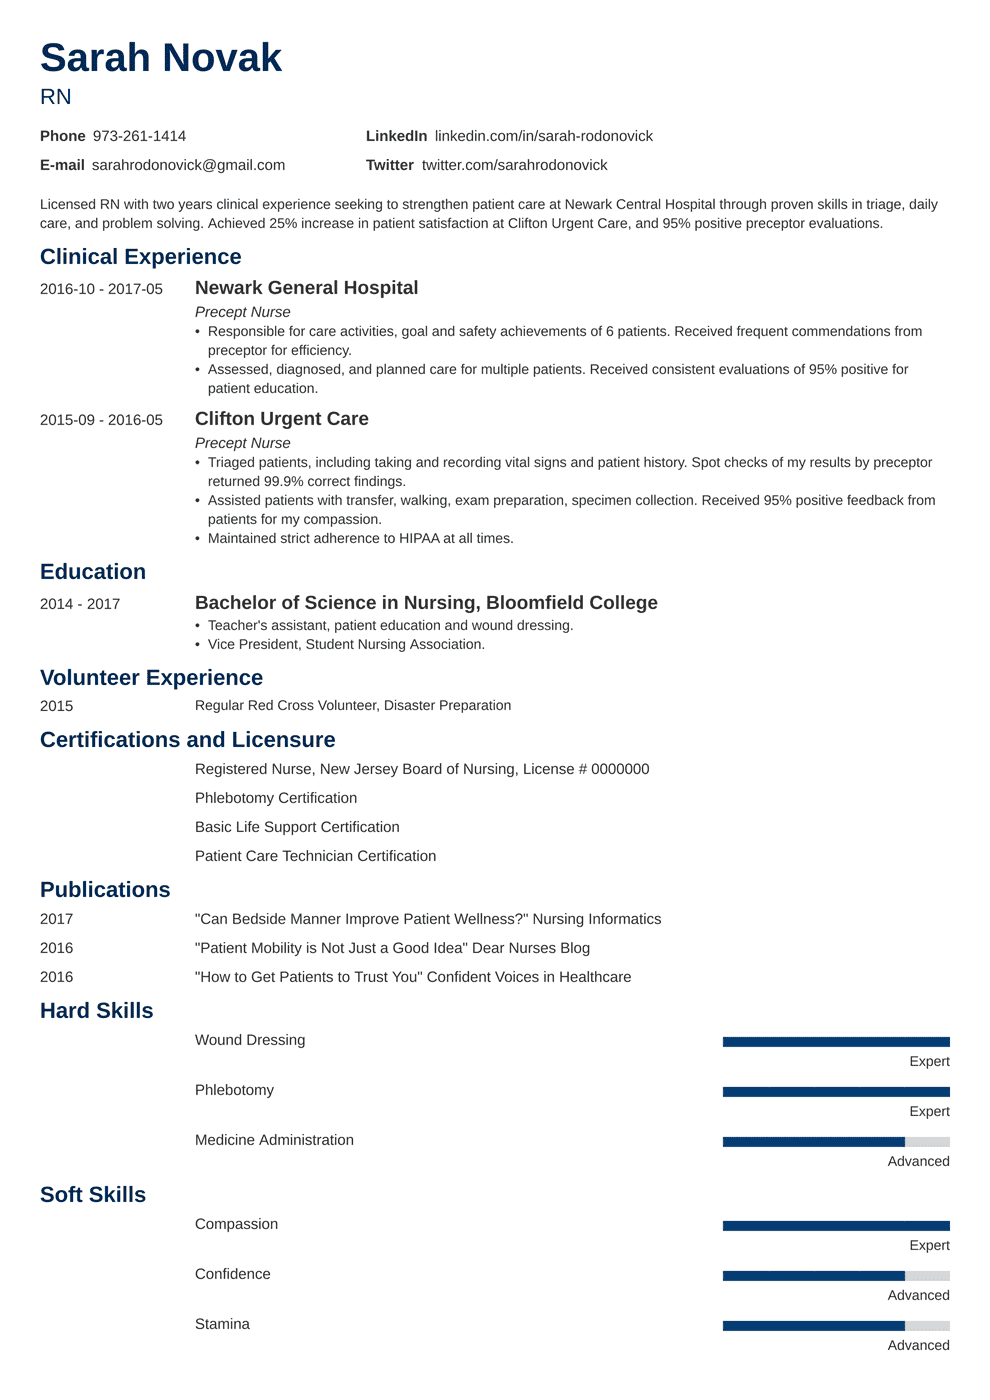 Nursing Student Resume Template & Guide for New Grads [+Skills List]